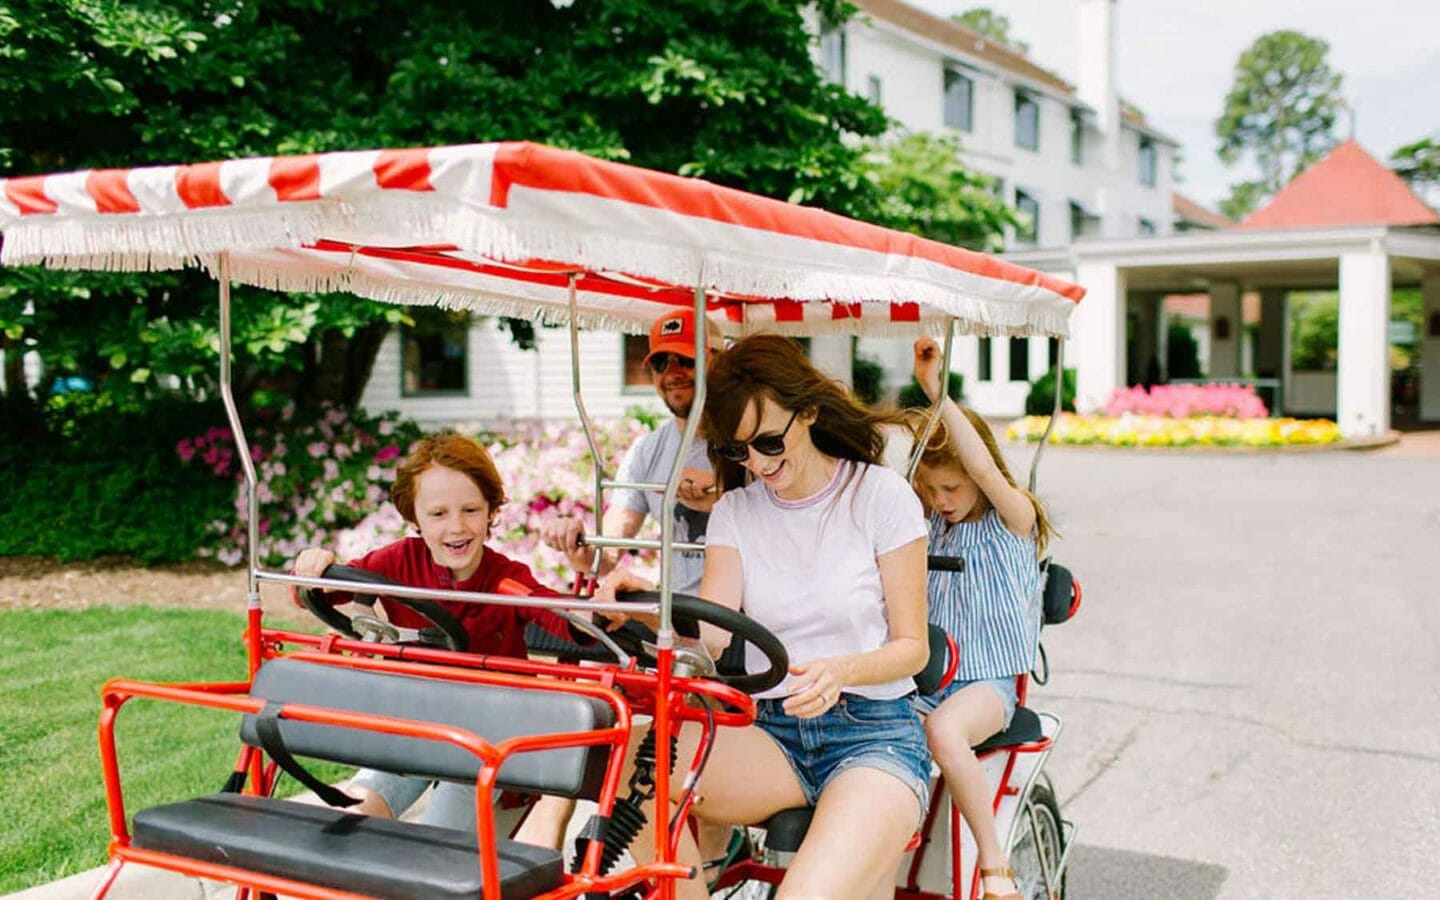 Family on a pedal car